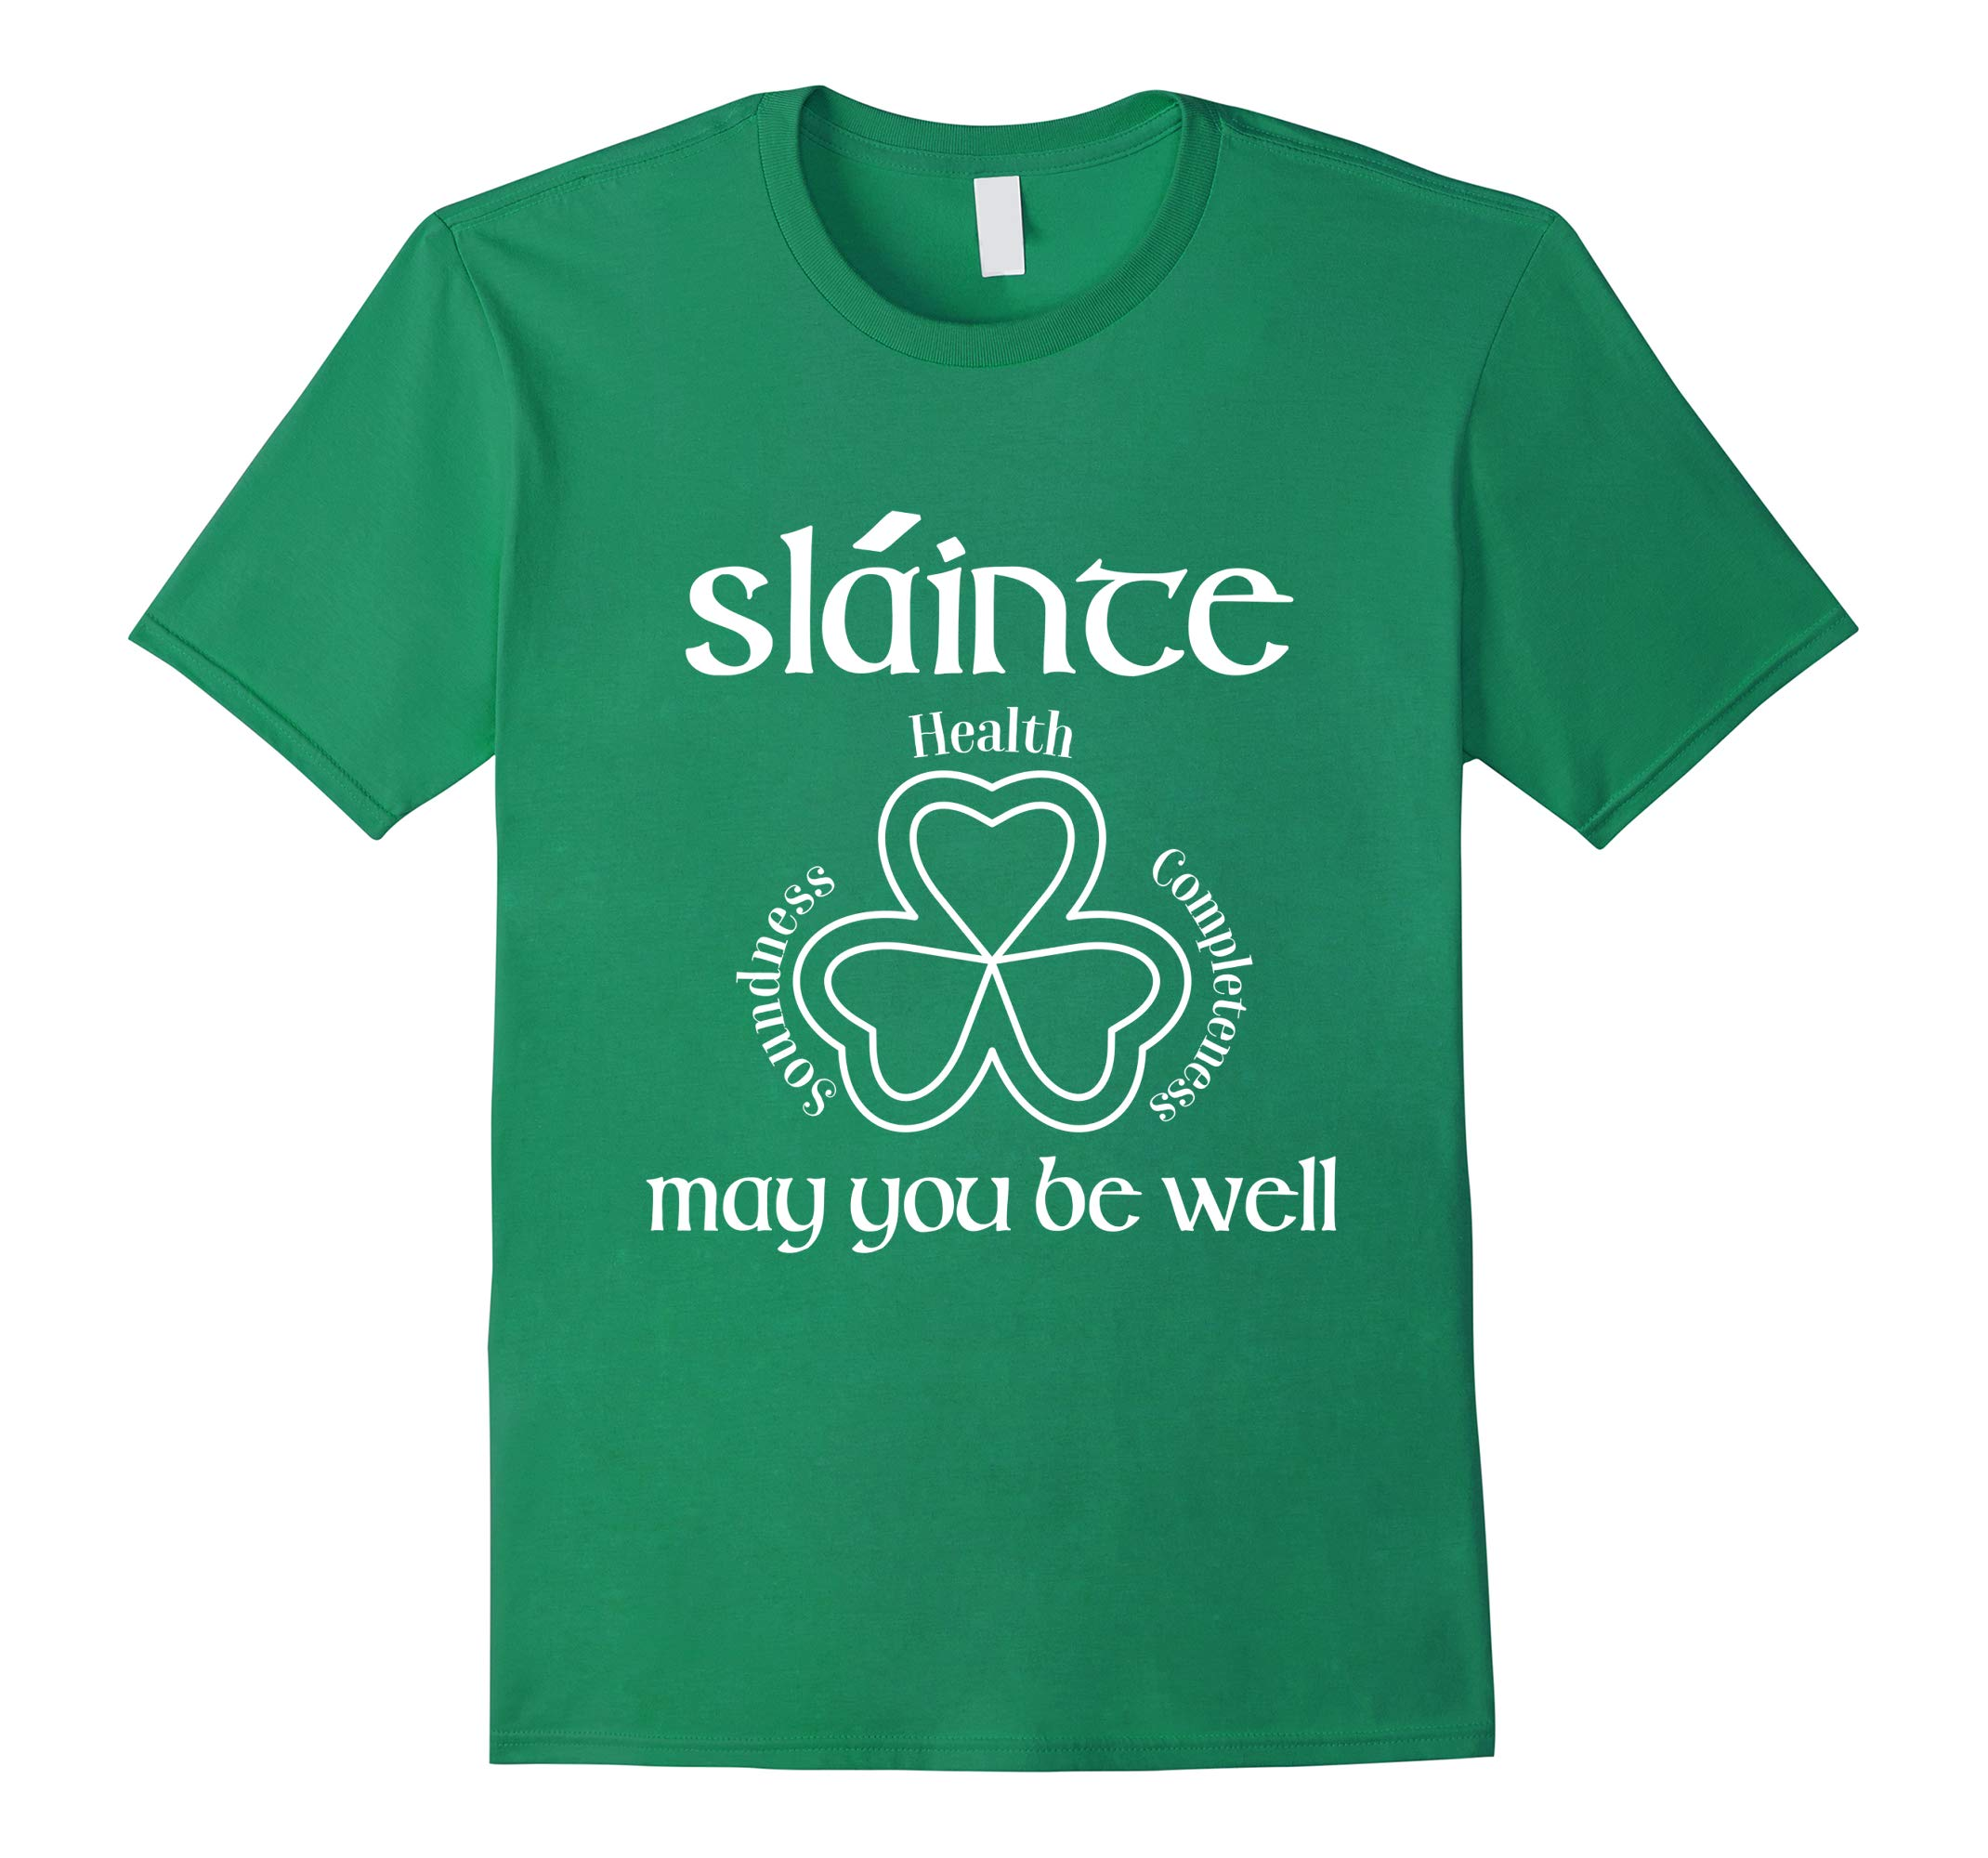 St Patricks Day Irish Clover Shirt - Slainte May You be Well-RT